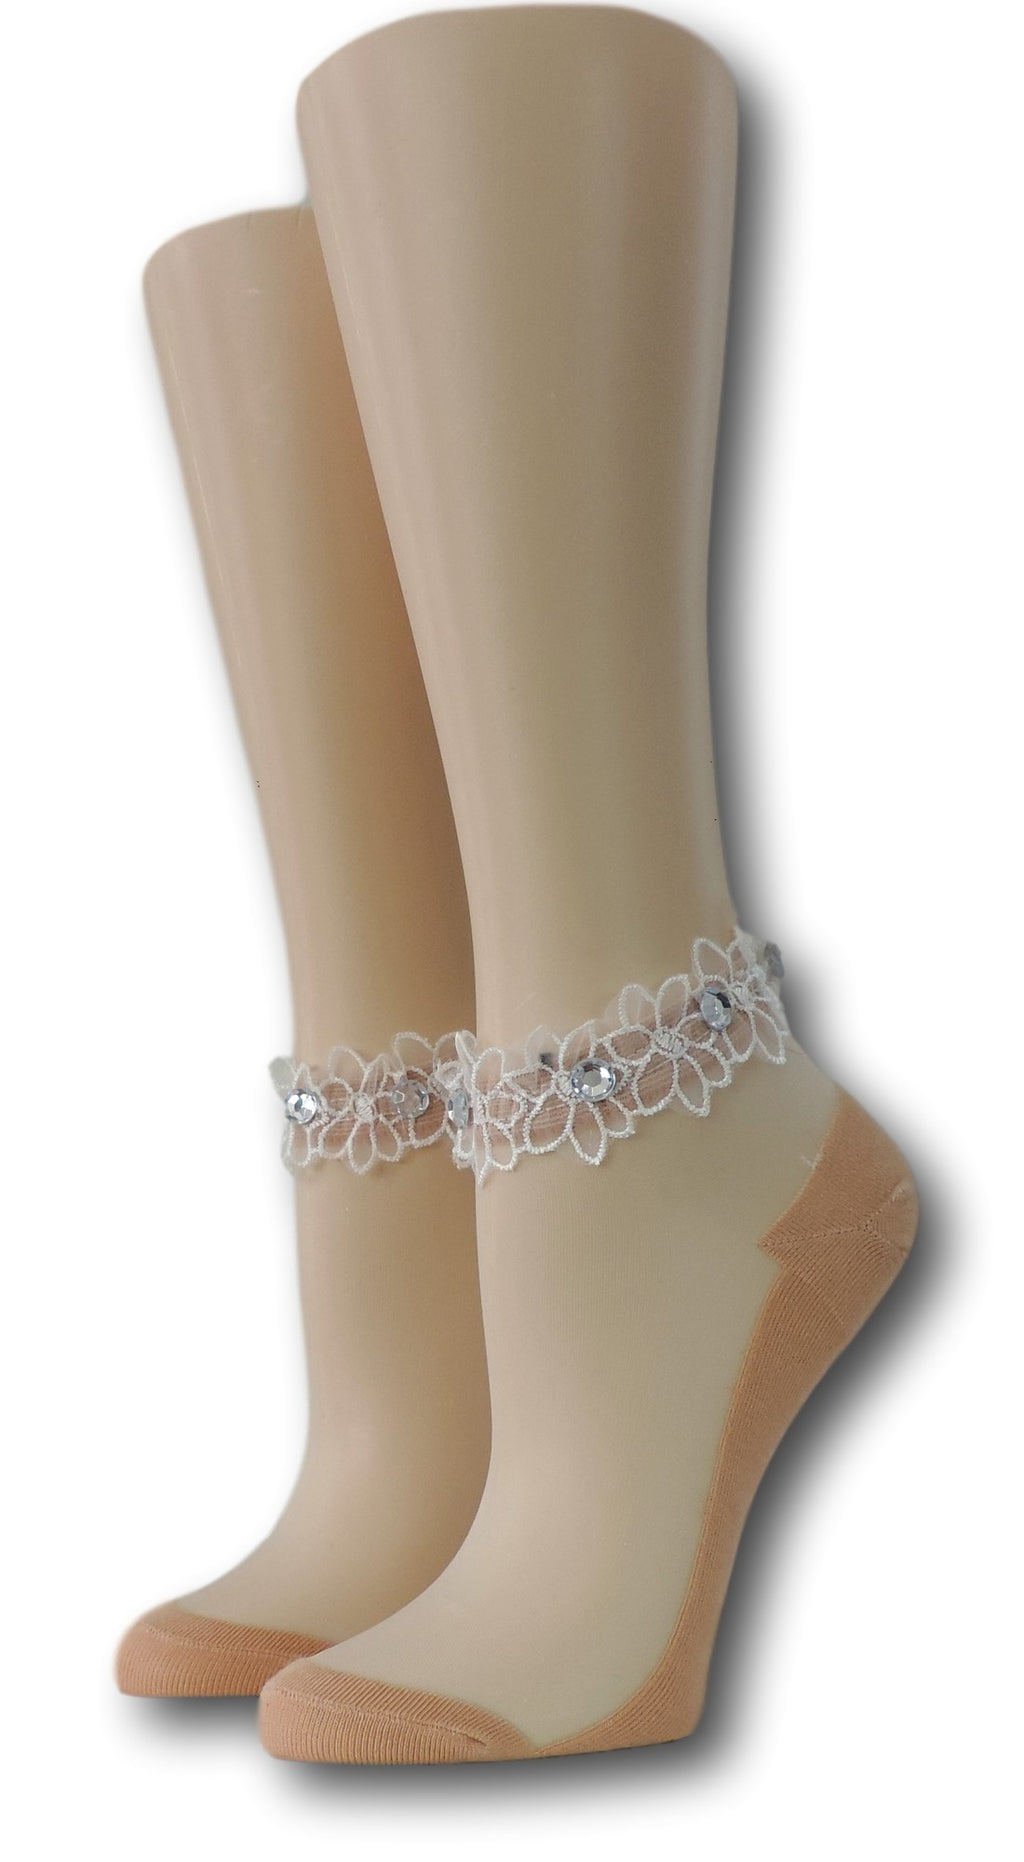 Cute Beige Ankle Sheer Socks with beads